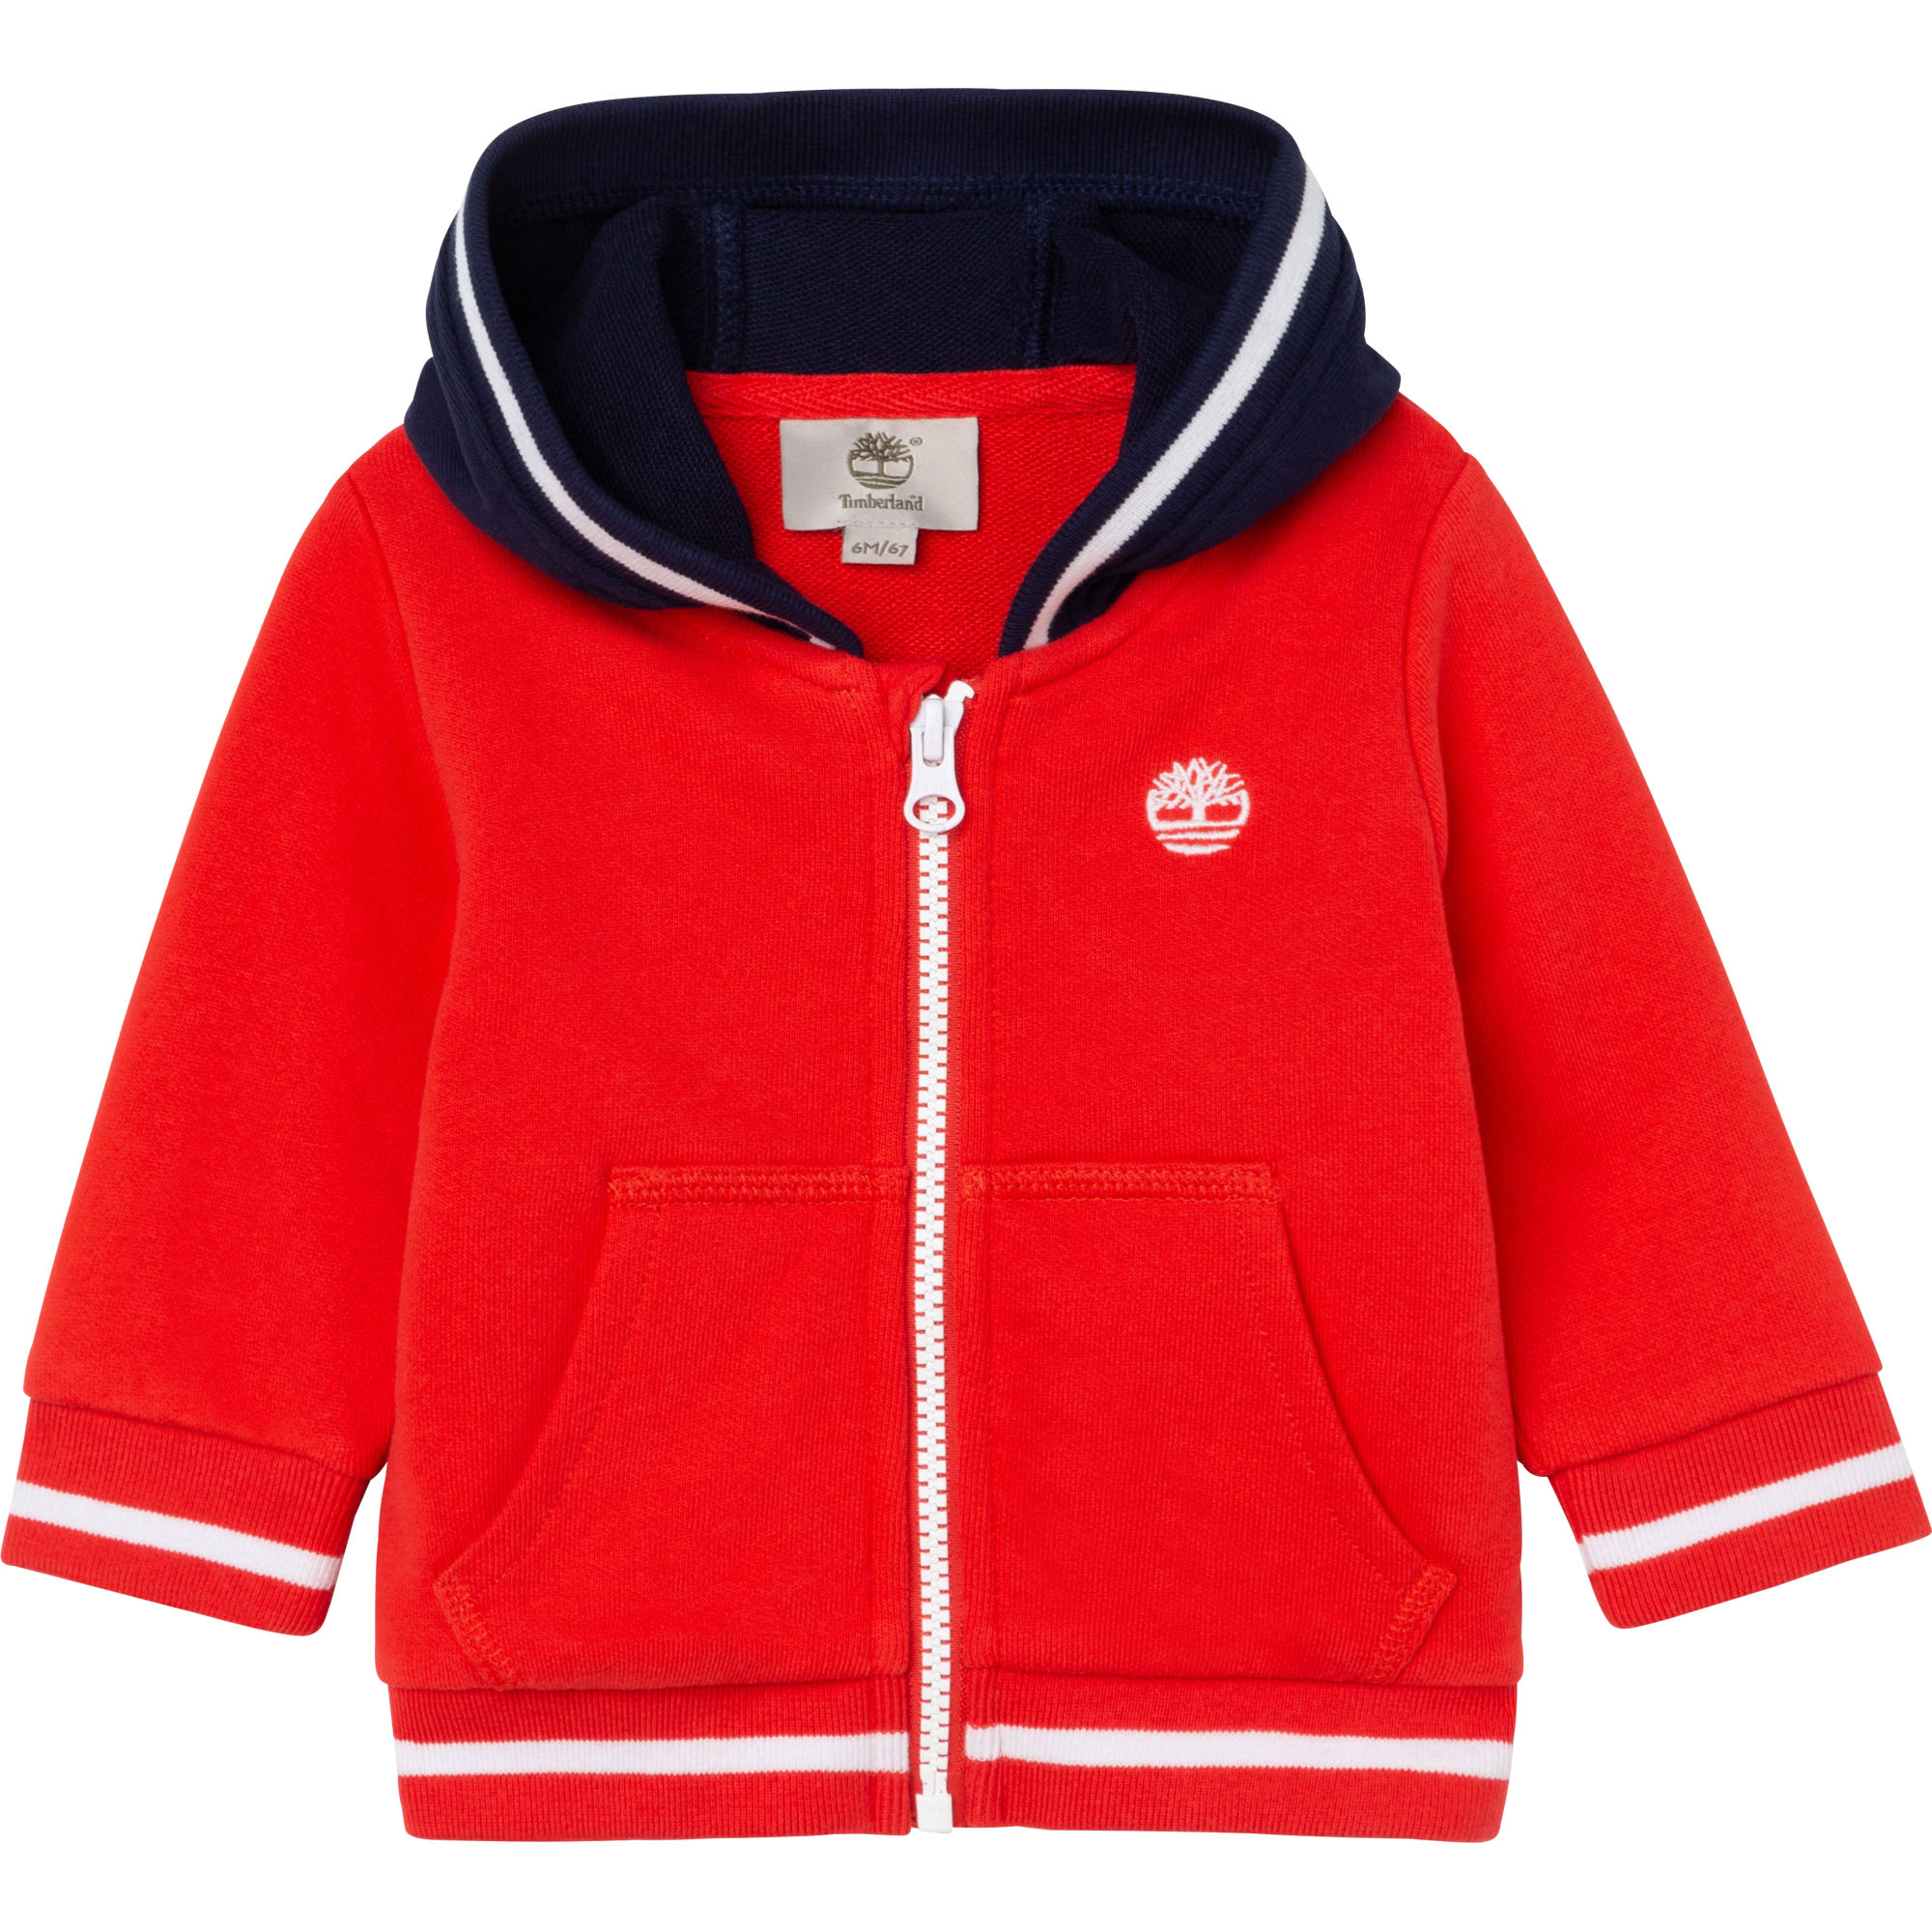 CARDIGAN A CAPUCHE TIMBERLAND pour GARCON